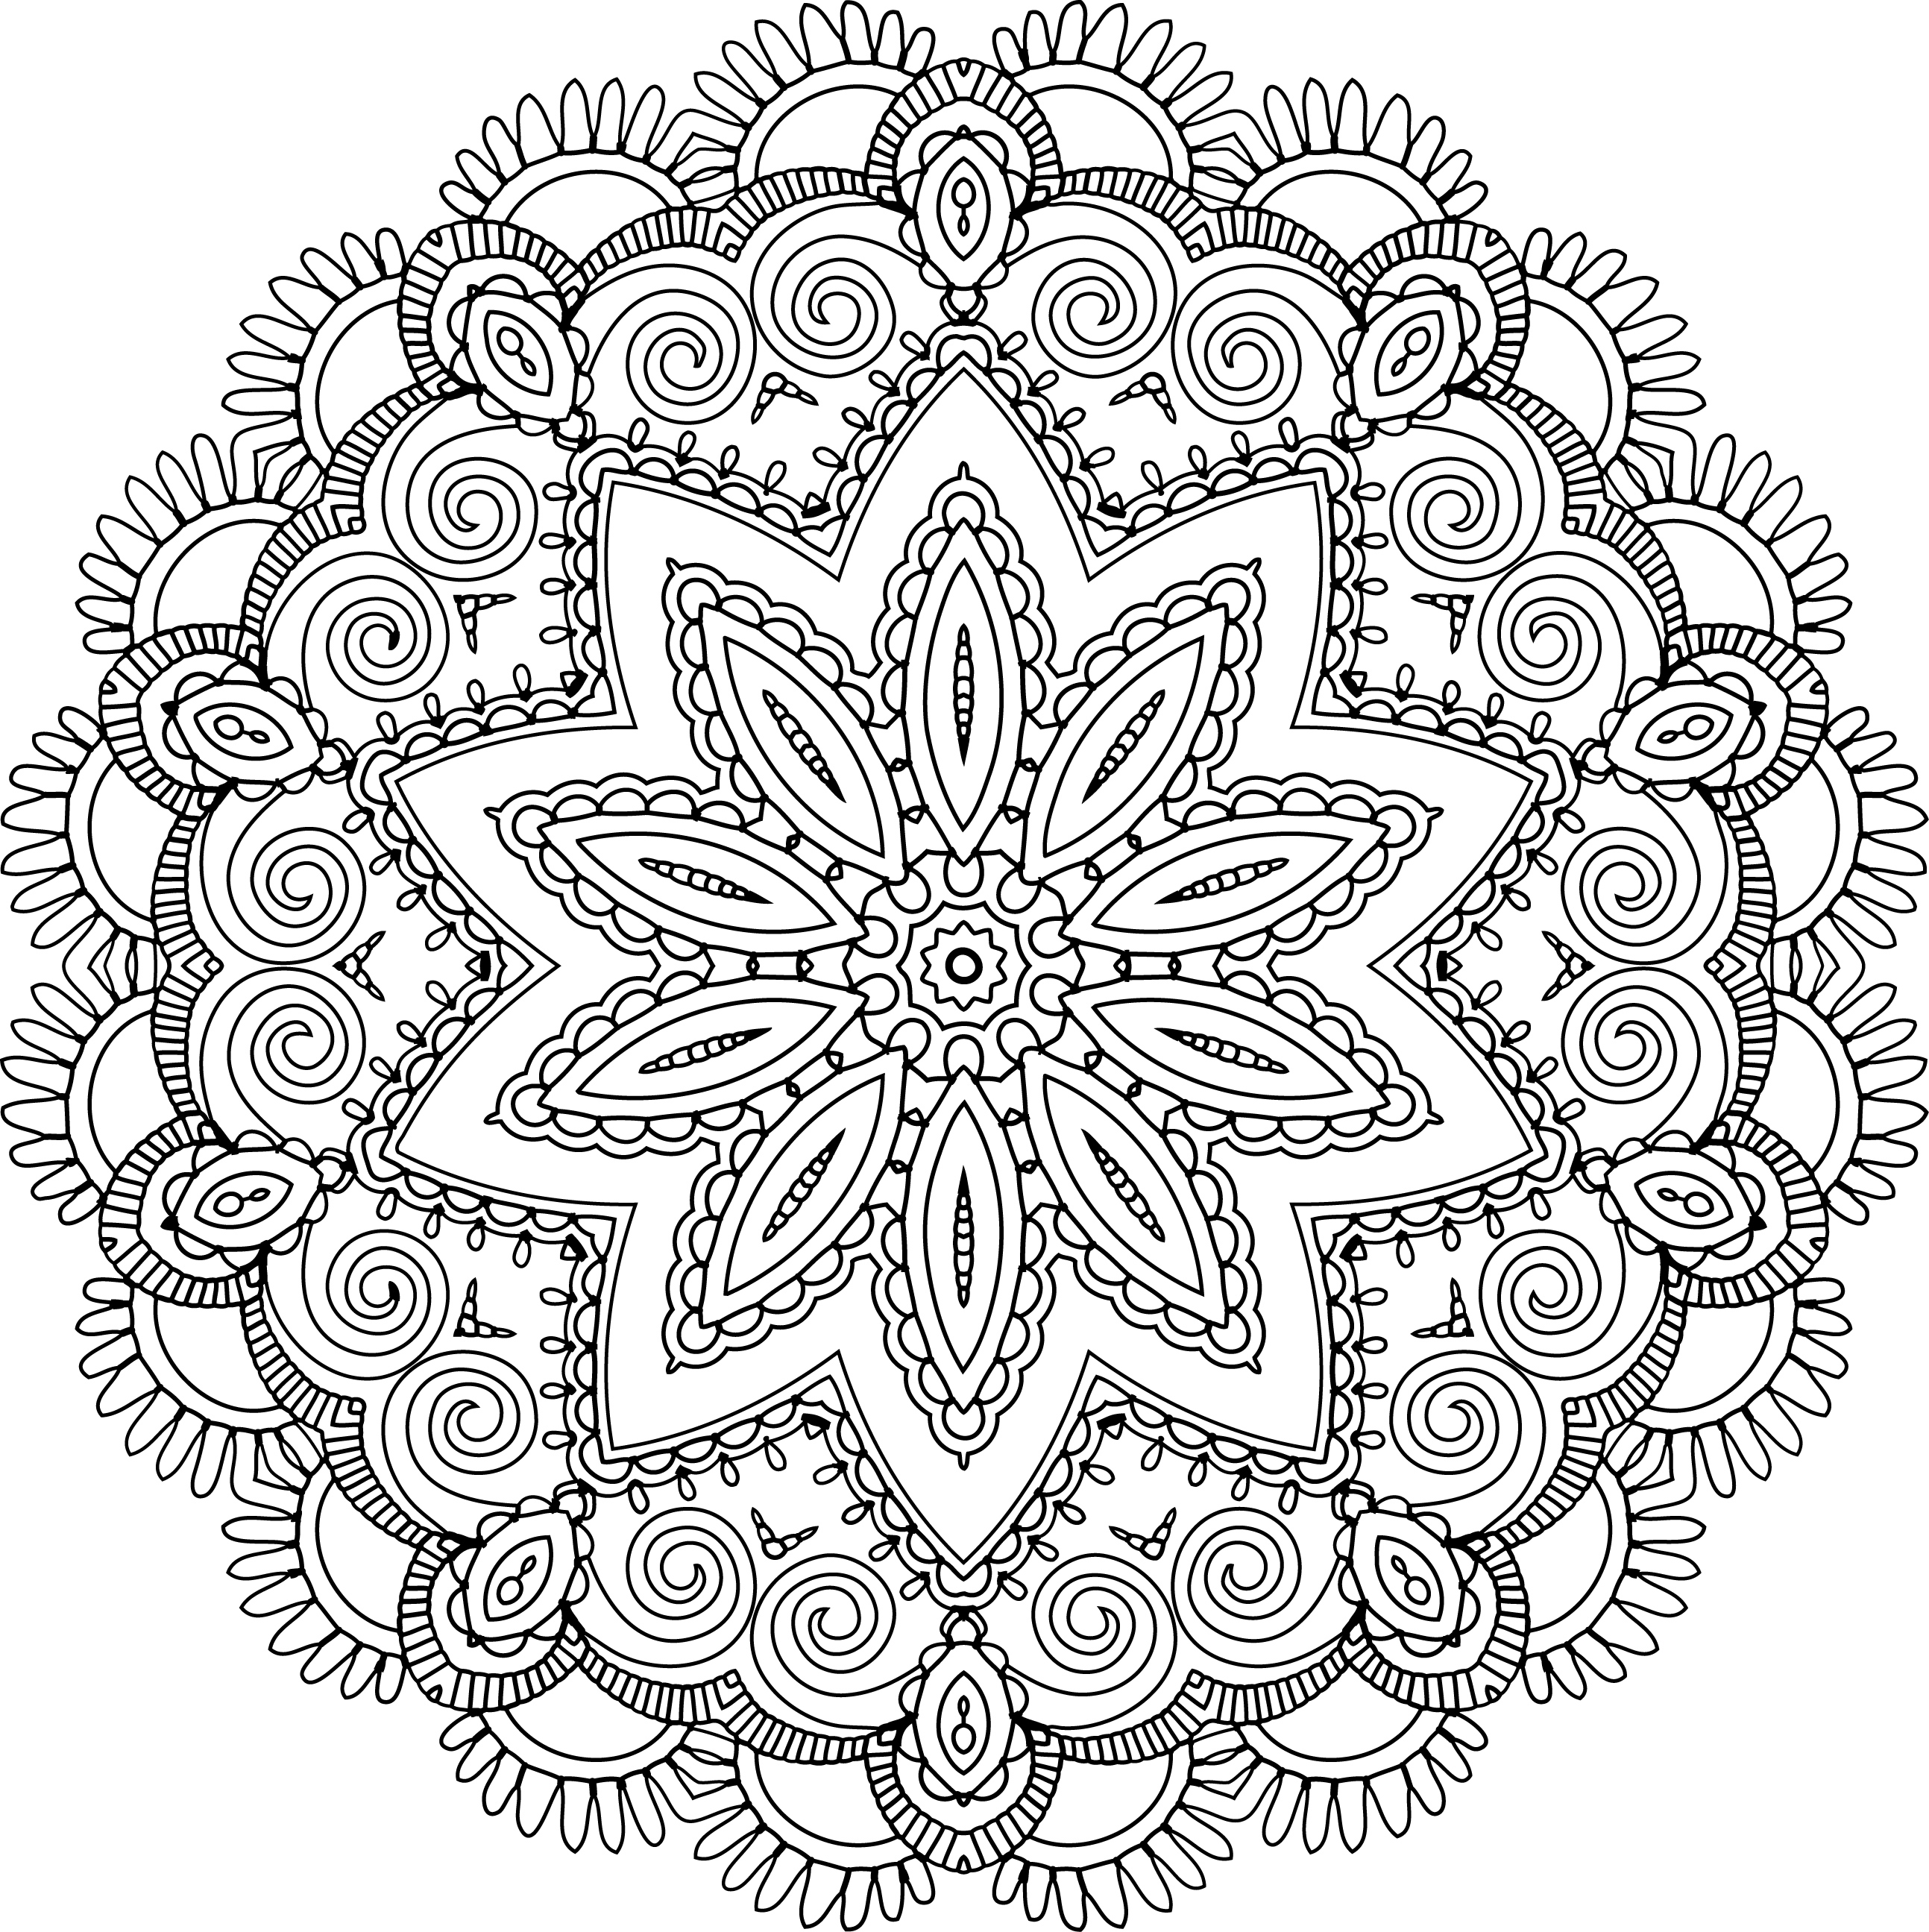 printable coloring pages of masterpieces - photo#30